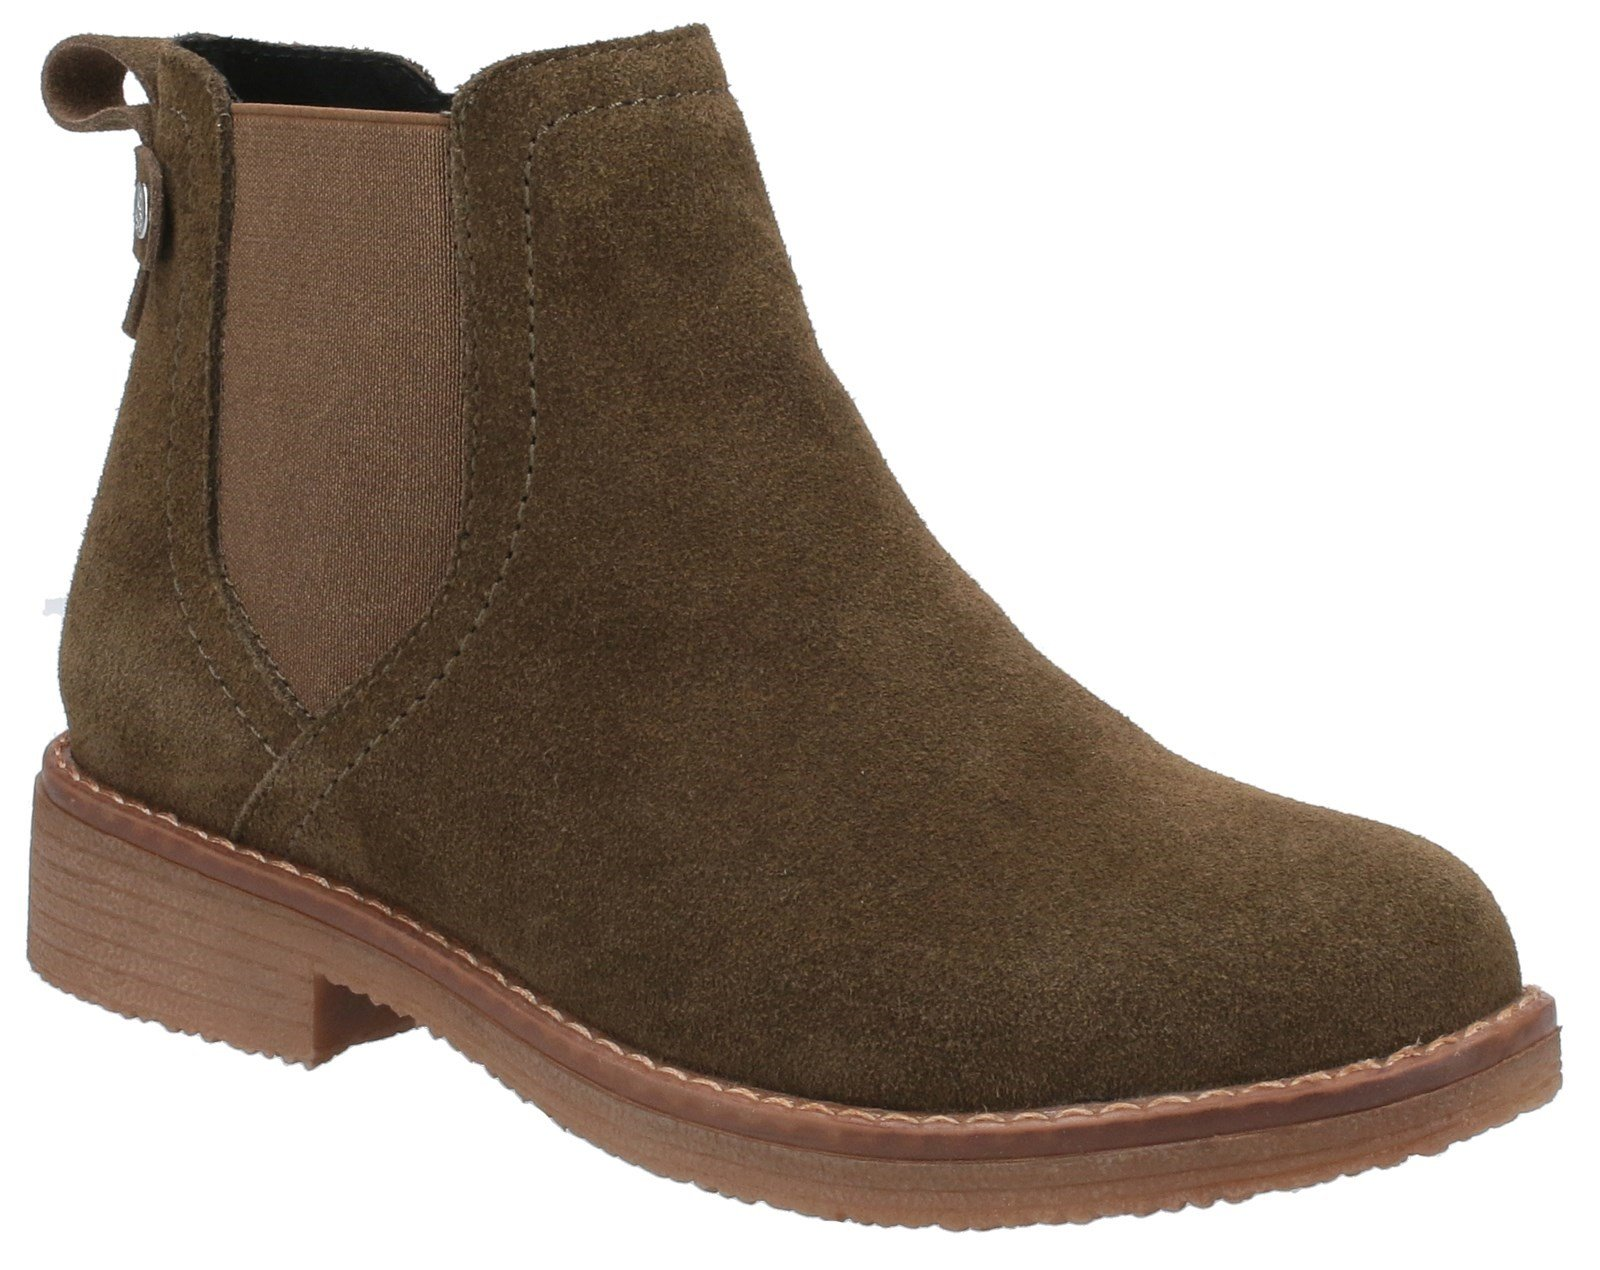 Hush Puppies Women's Maddy Ladies Ankle Boots Various Colours 31214 - Khaki 3